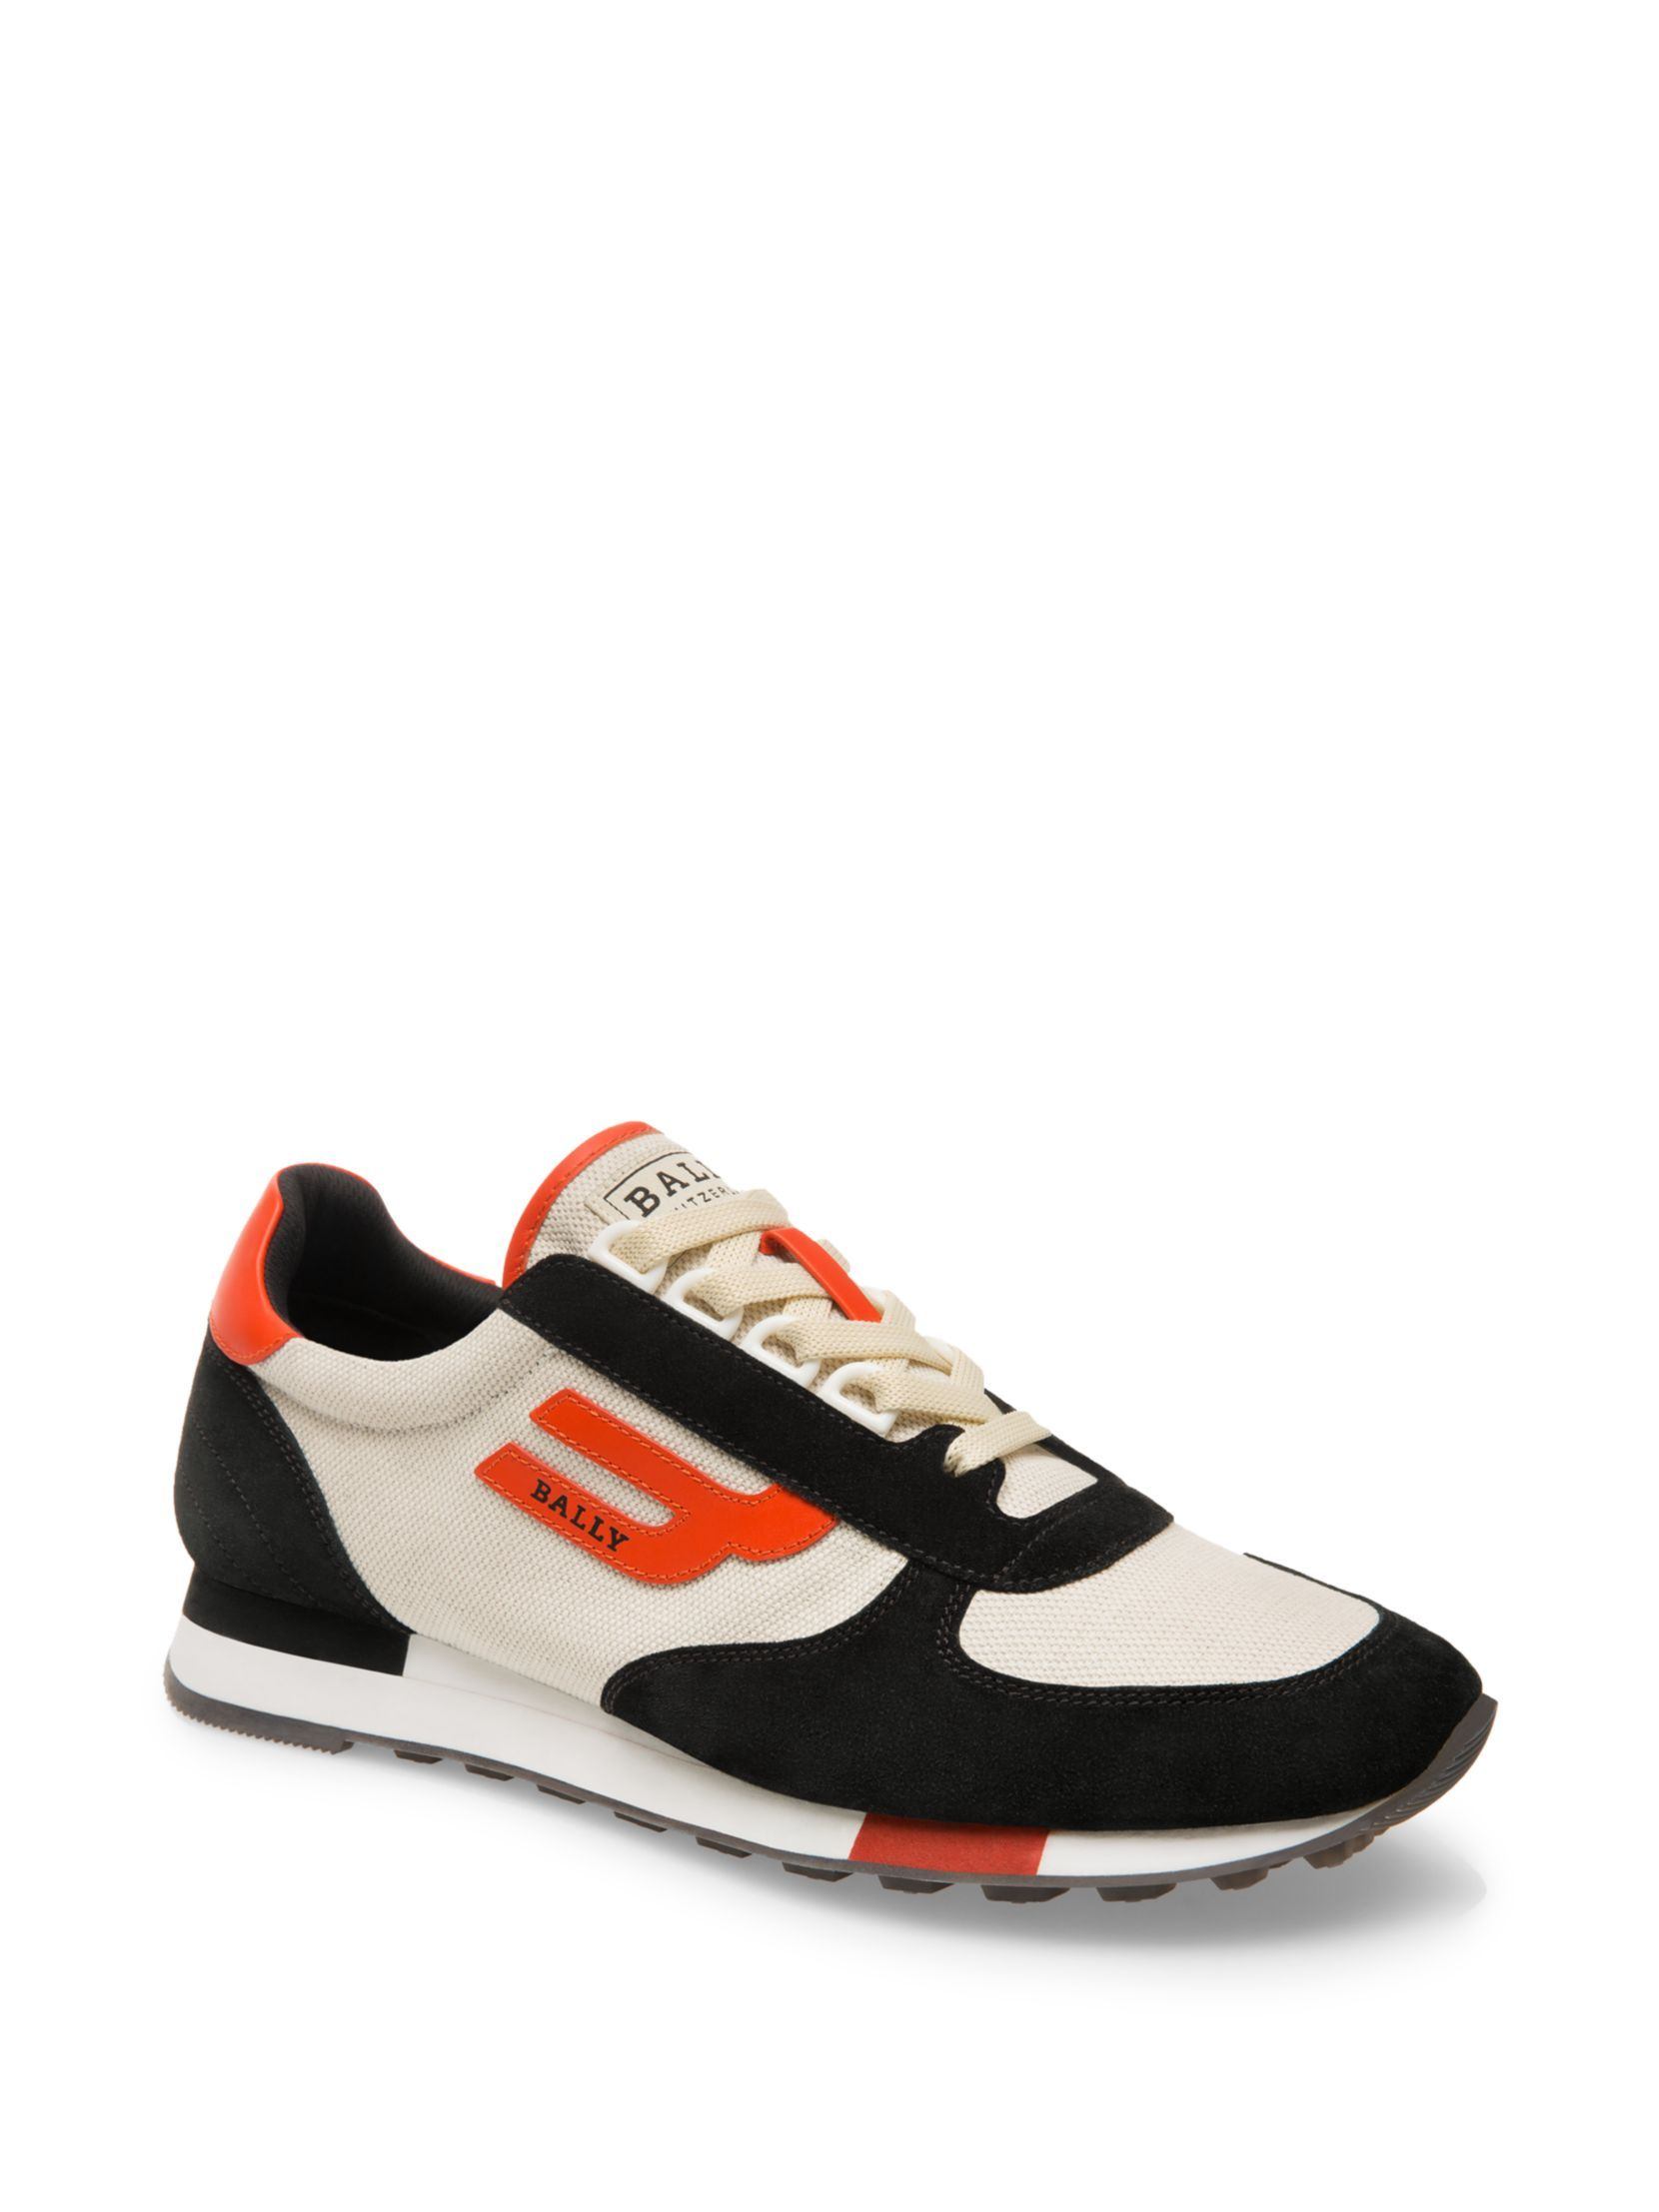 Bally Gavino Retro Runner Low-Top Sneakers 8glXO